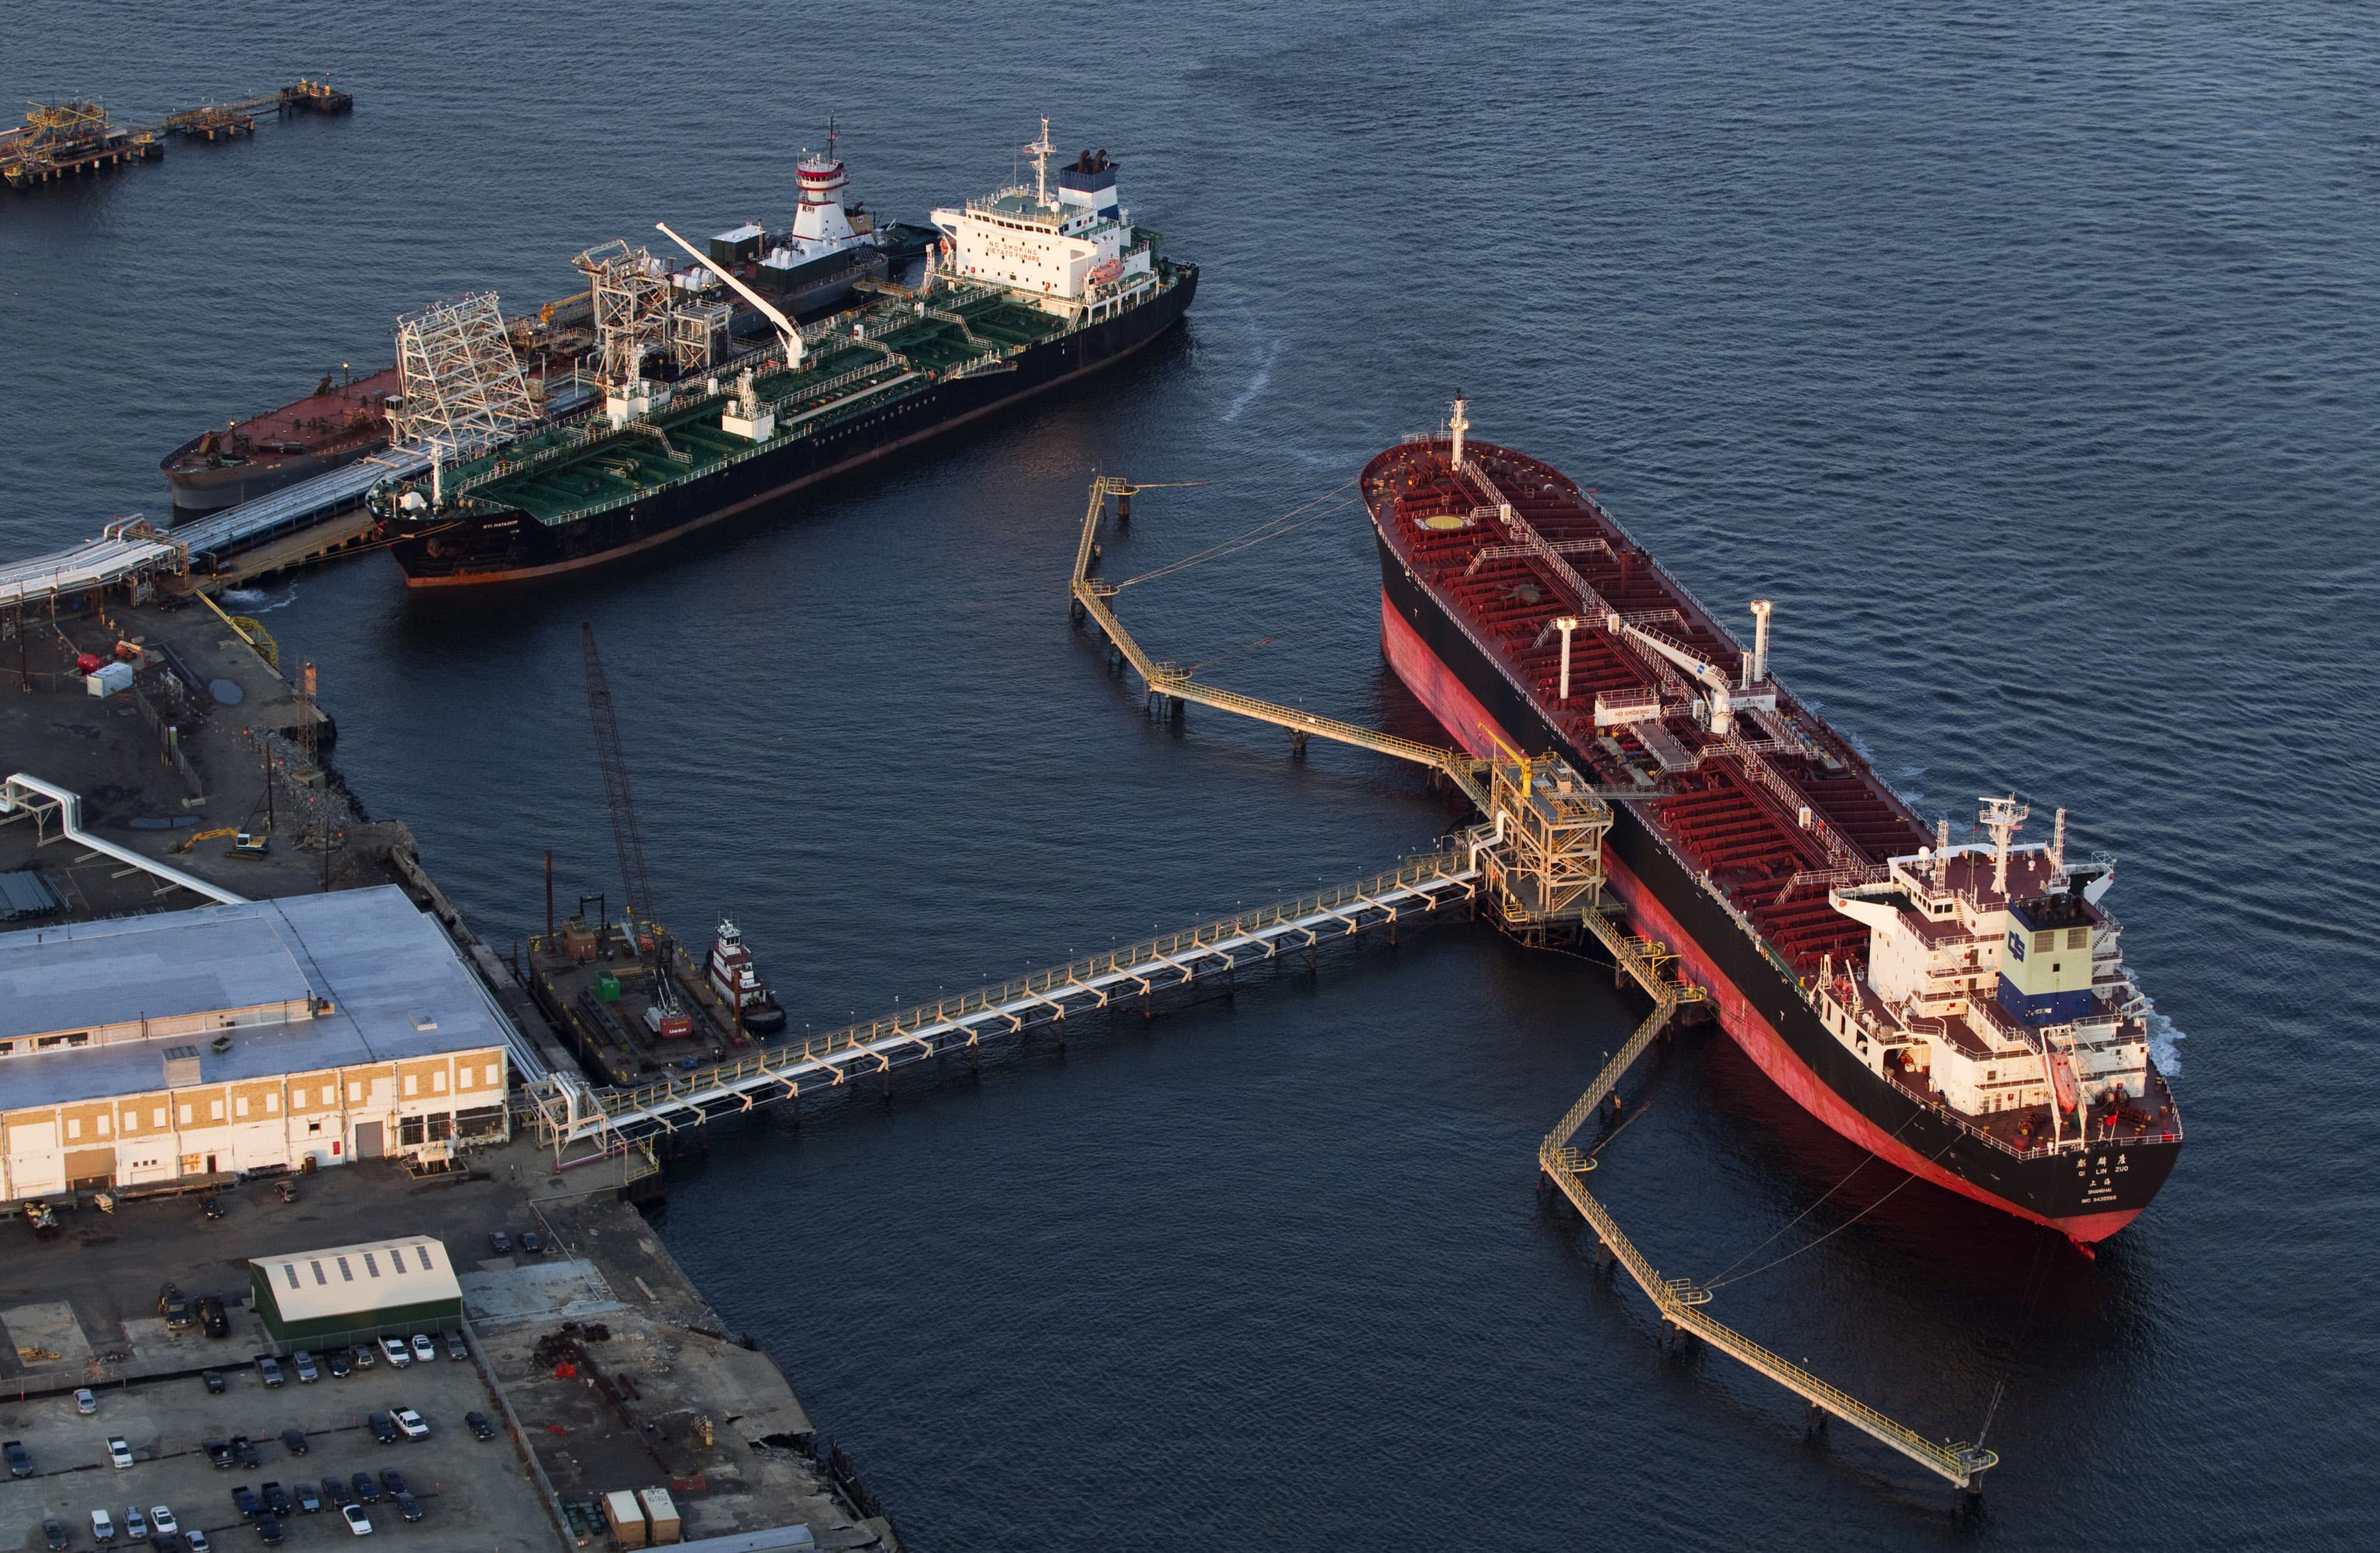 RT: Oil tankers Qi Lin Zuo of China and Sti-Matador